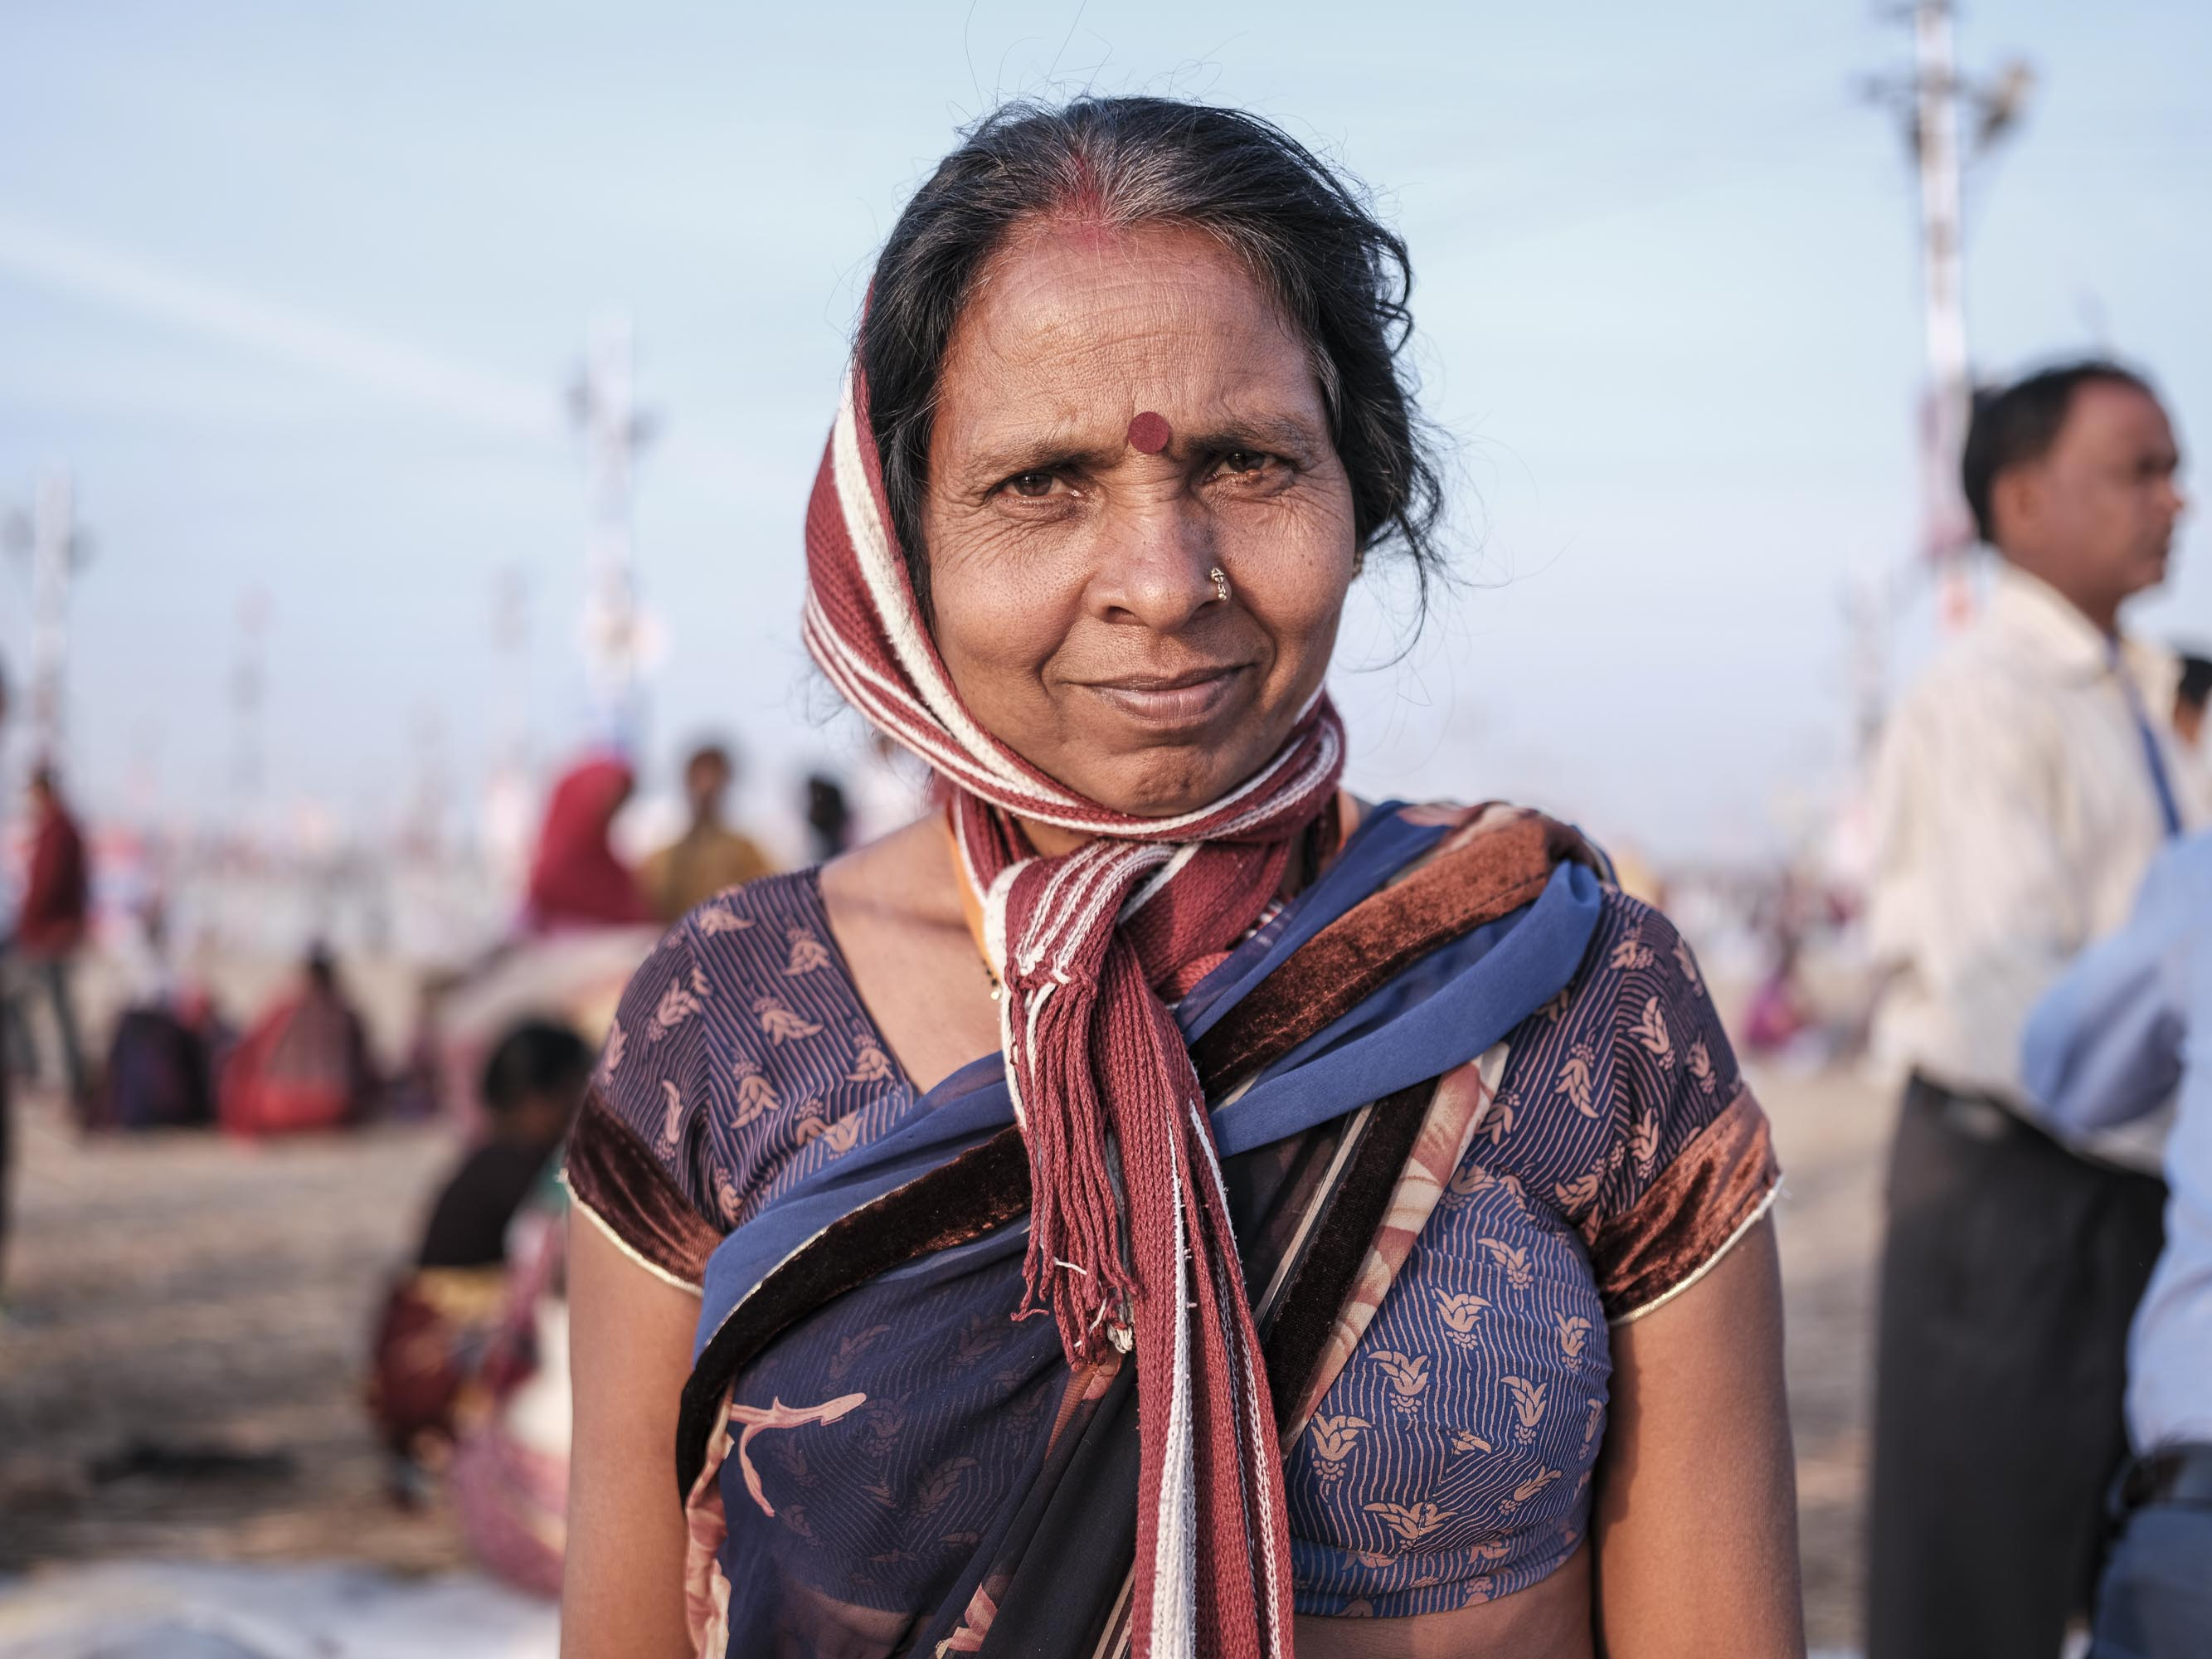 after bath lady pilgrims Kumbh mela 2019 India Allahabad Prayagraj Ardh hindu religious Festival event rivers photographer jose jeuland photography